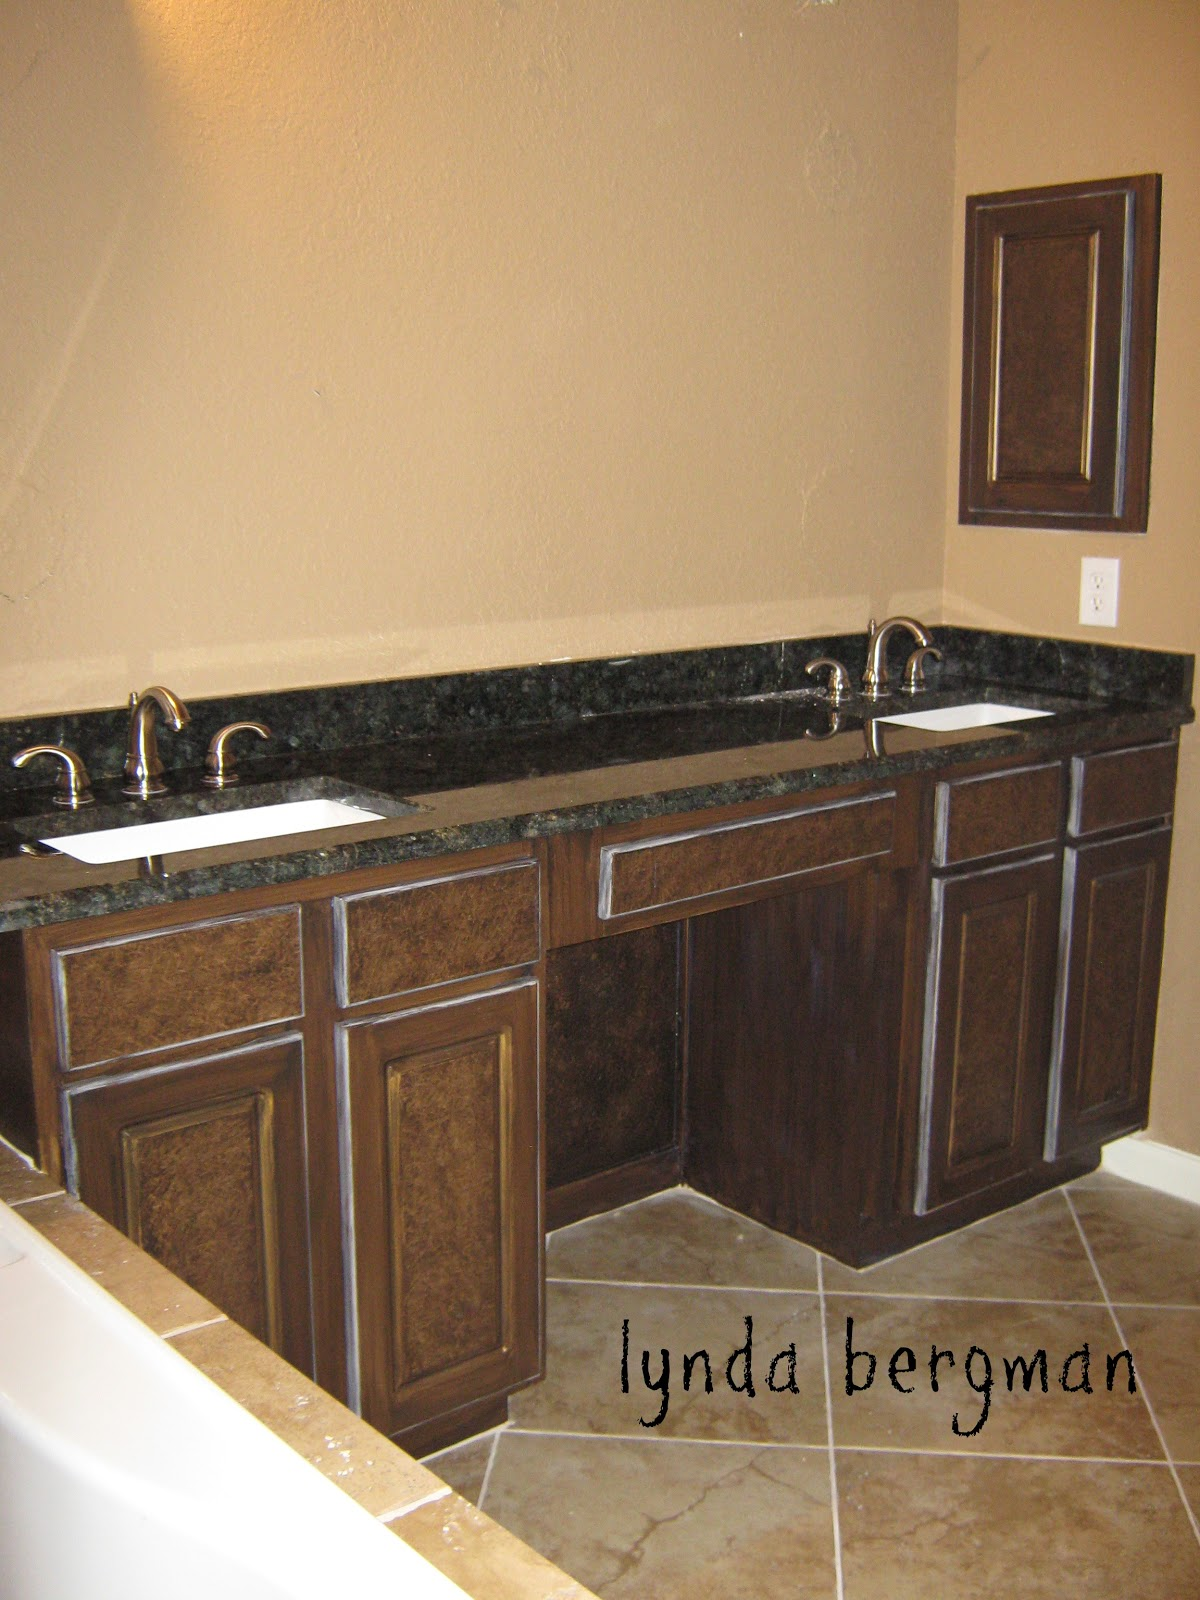 How To Paint Over Stained Bathroom Cabinets lynda bergman decorative artisan: painting white bathroom cabinets